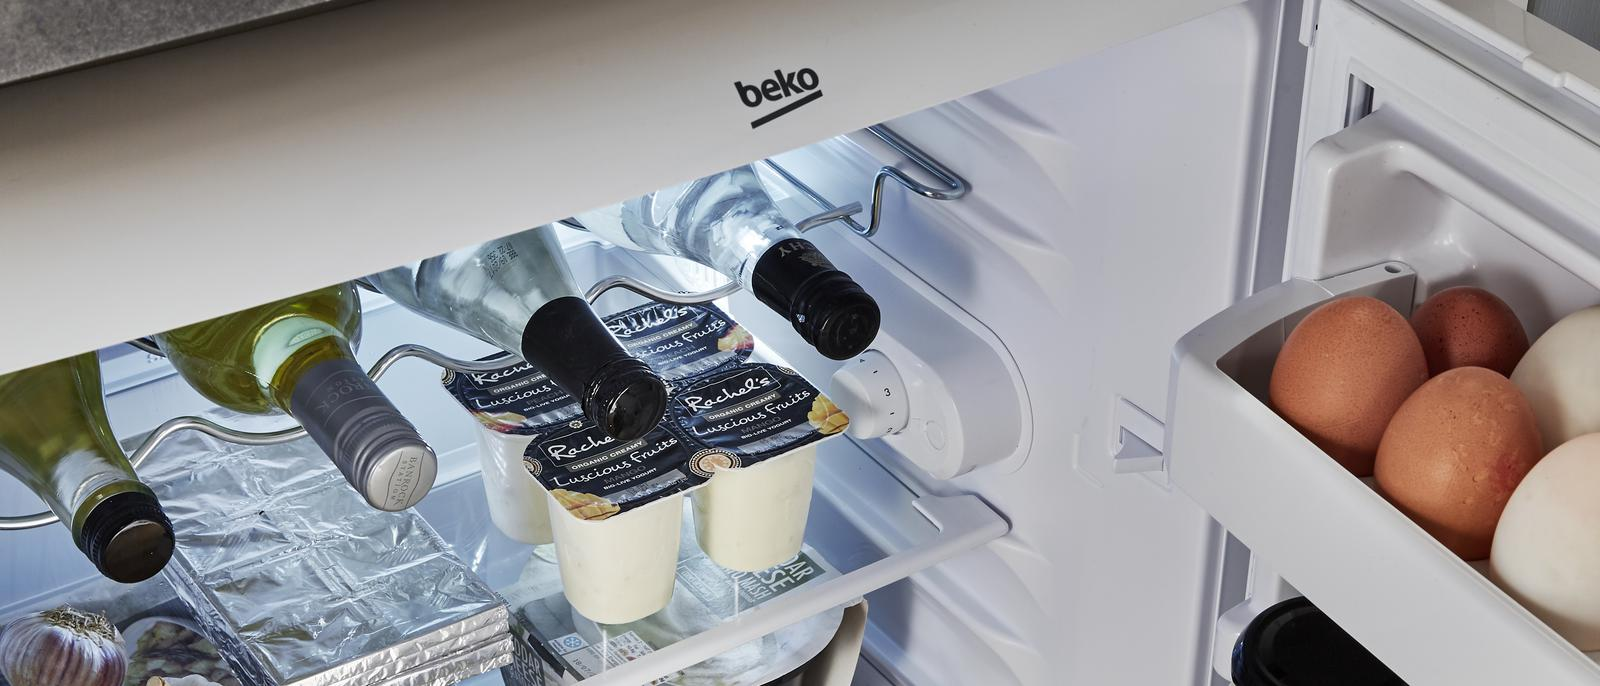 BEKO-FLYER-MAY-2017-UNDERCOUNTER-FRIDGE-DETAIL